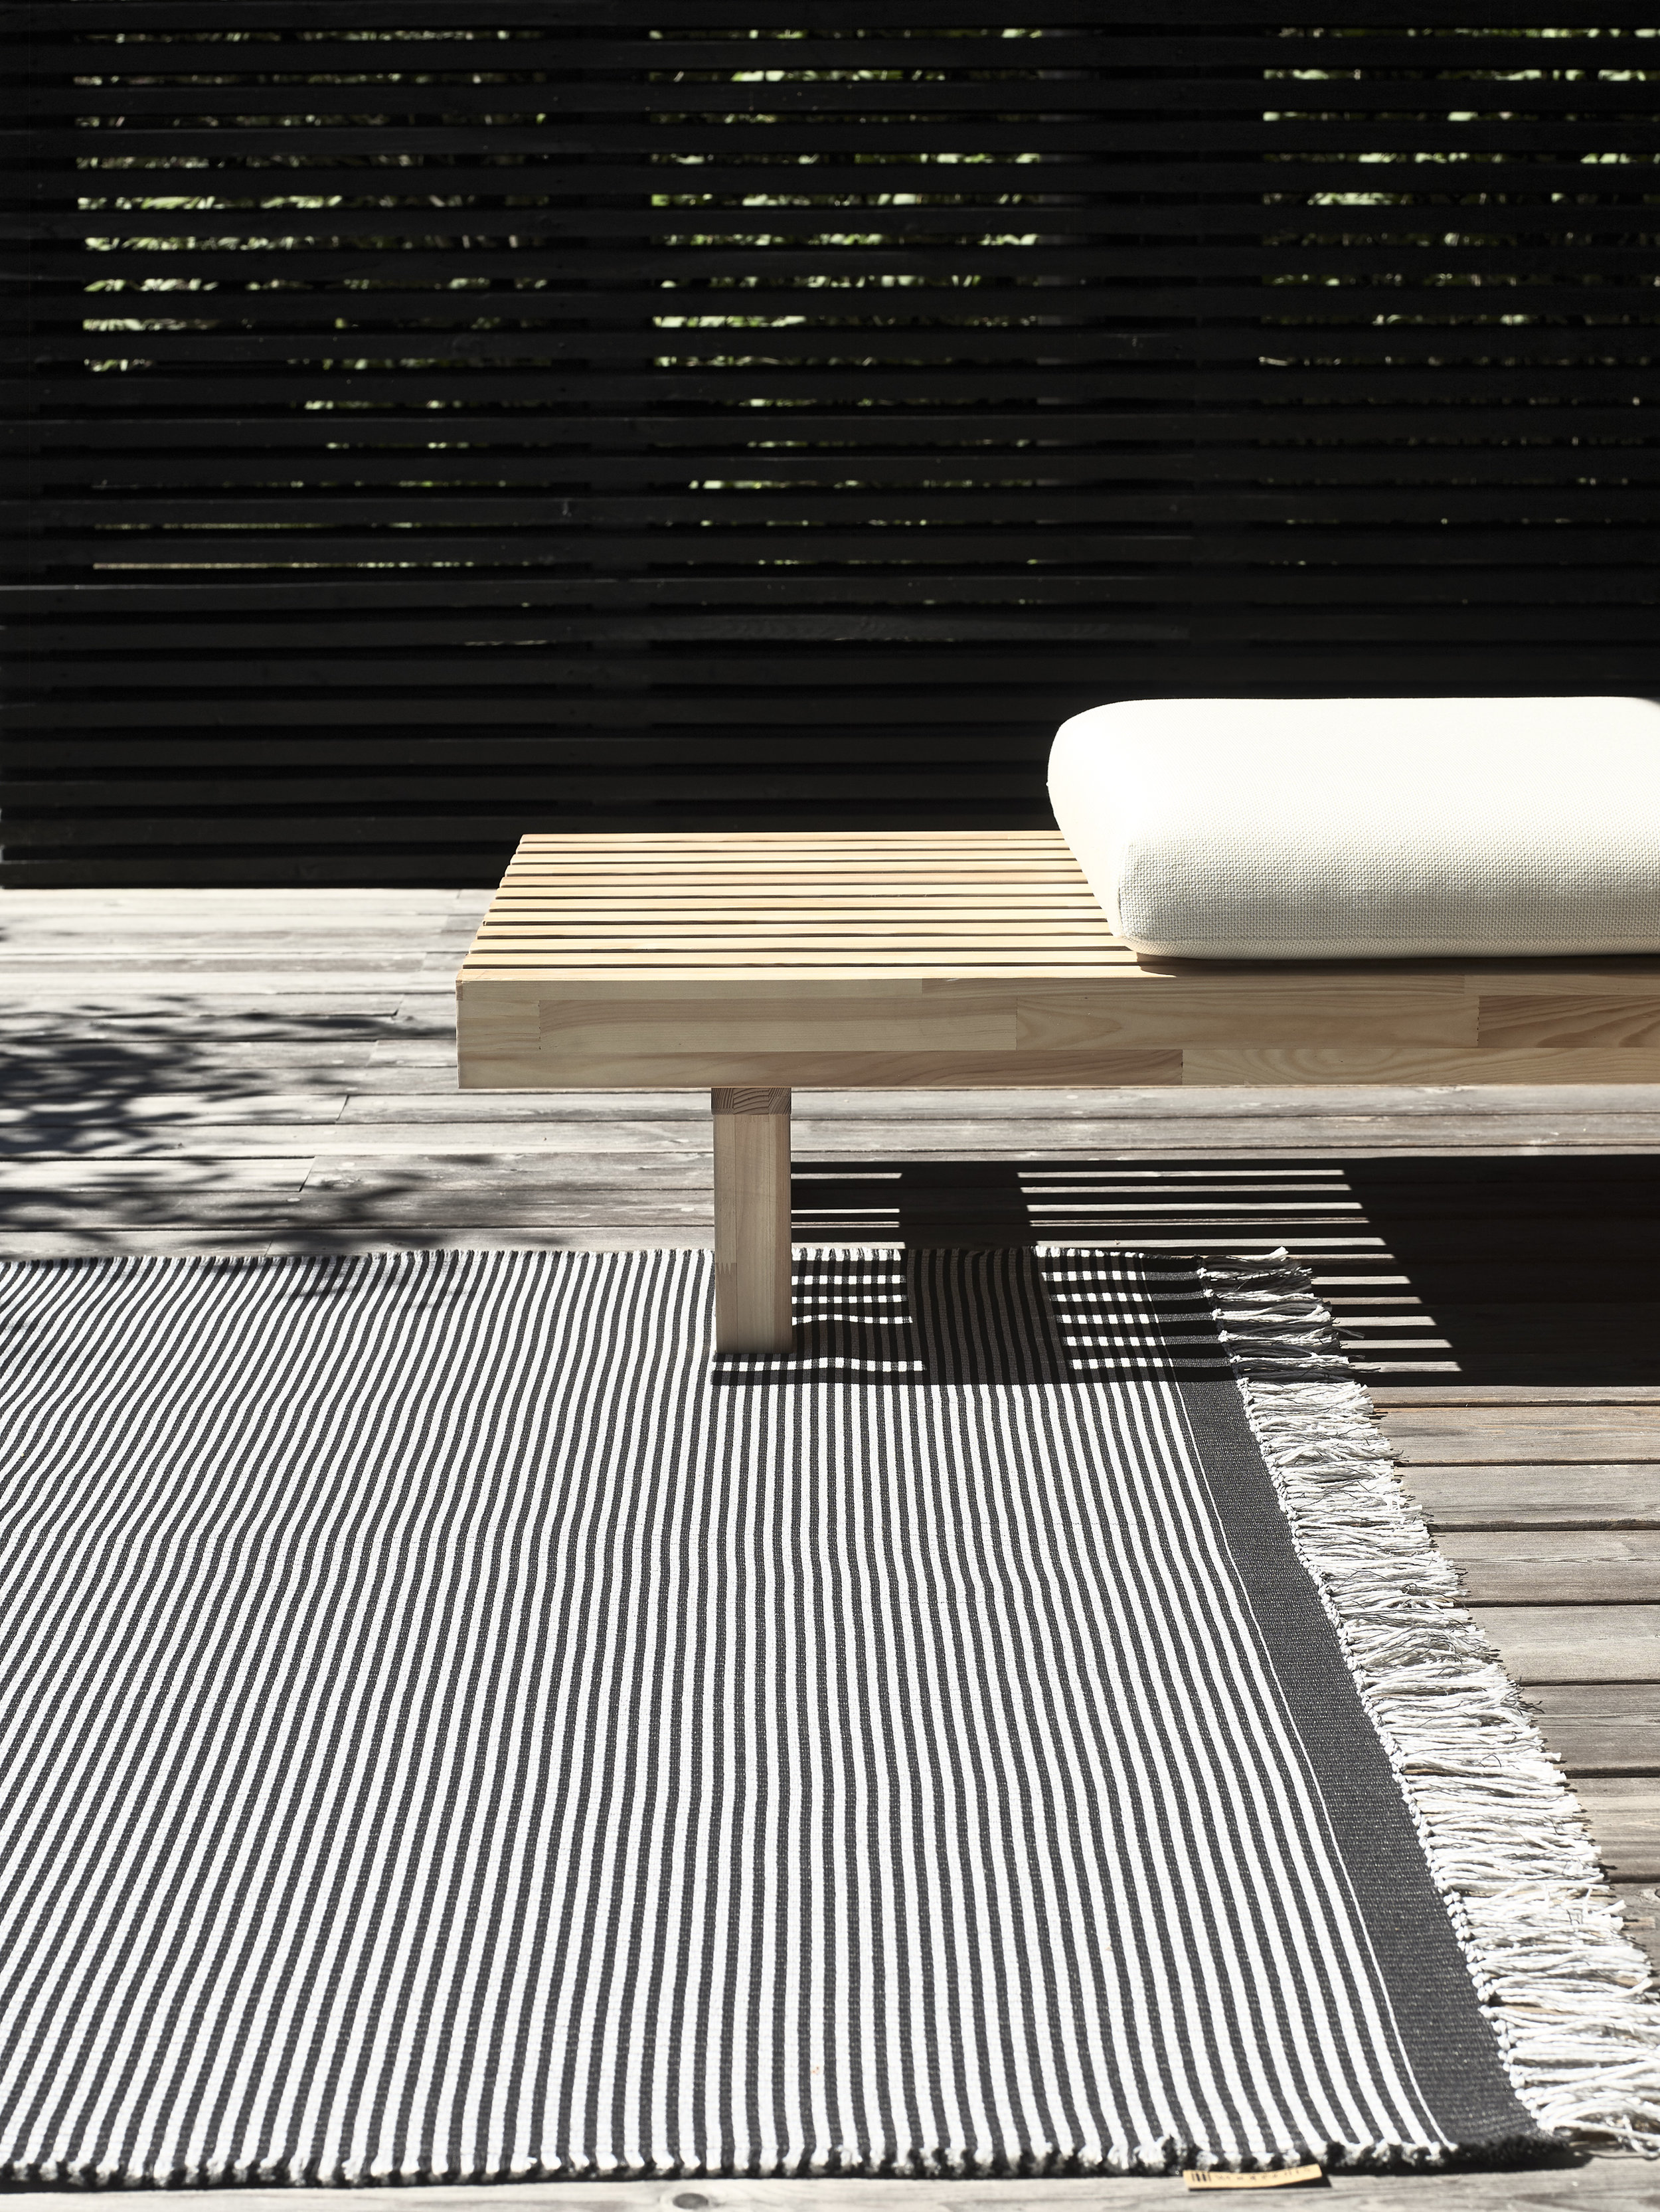 The Woodnotes outdoor carpet  has a soft feel and is transpiring therefore ideal for leisure living. Outdoor River carpet col. graphite-pearl grey.  Laveri  outdoor bench with drainable mattress upholstered Saimaa fabric col. natural white.